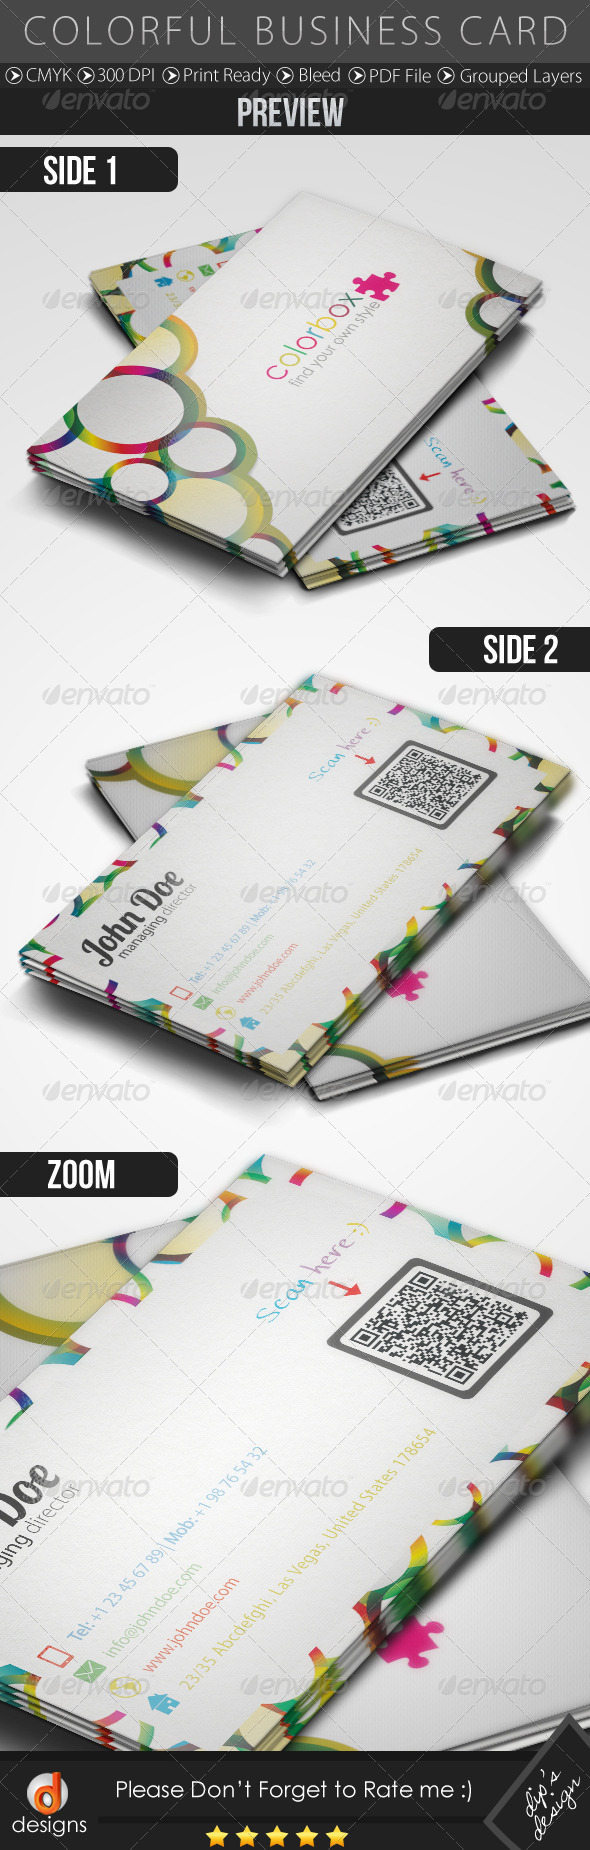 GraphicRiver Colorful Business Card 4979356